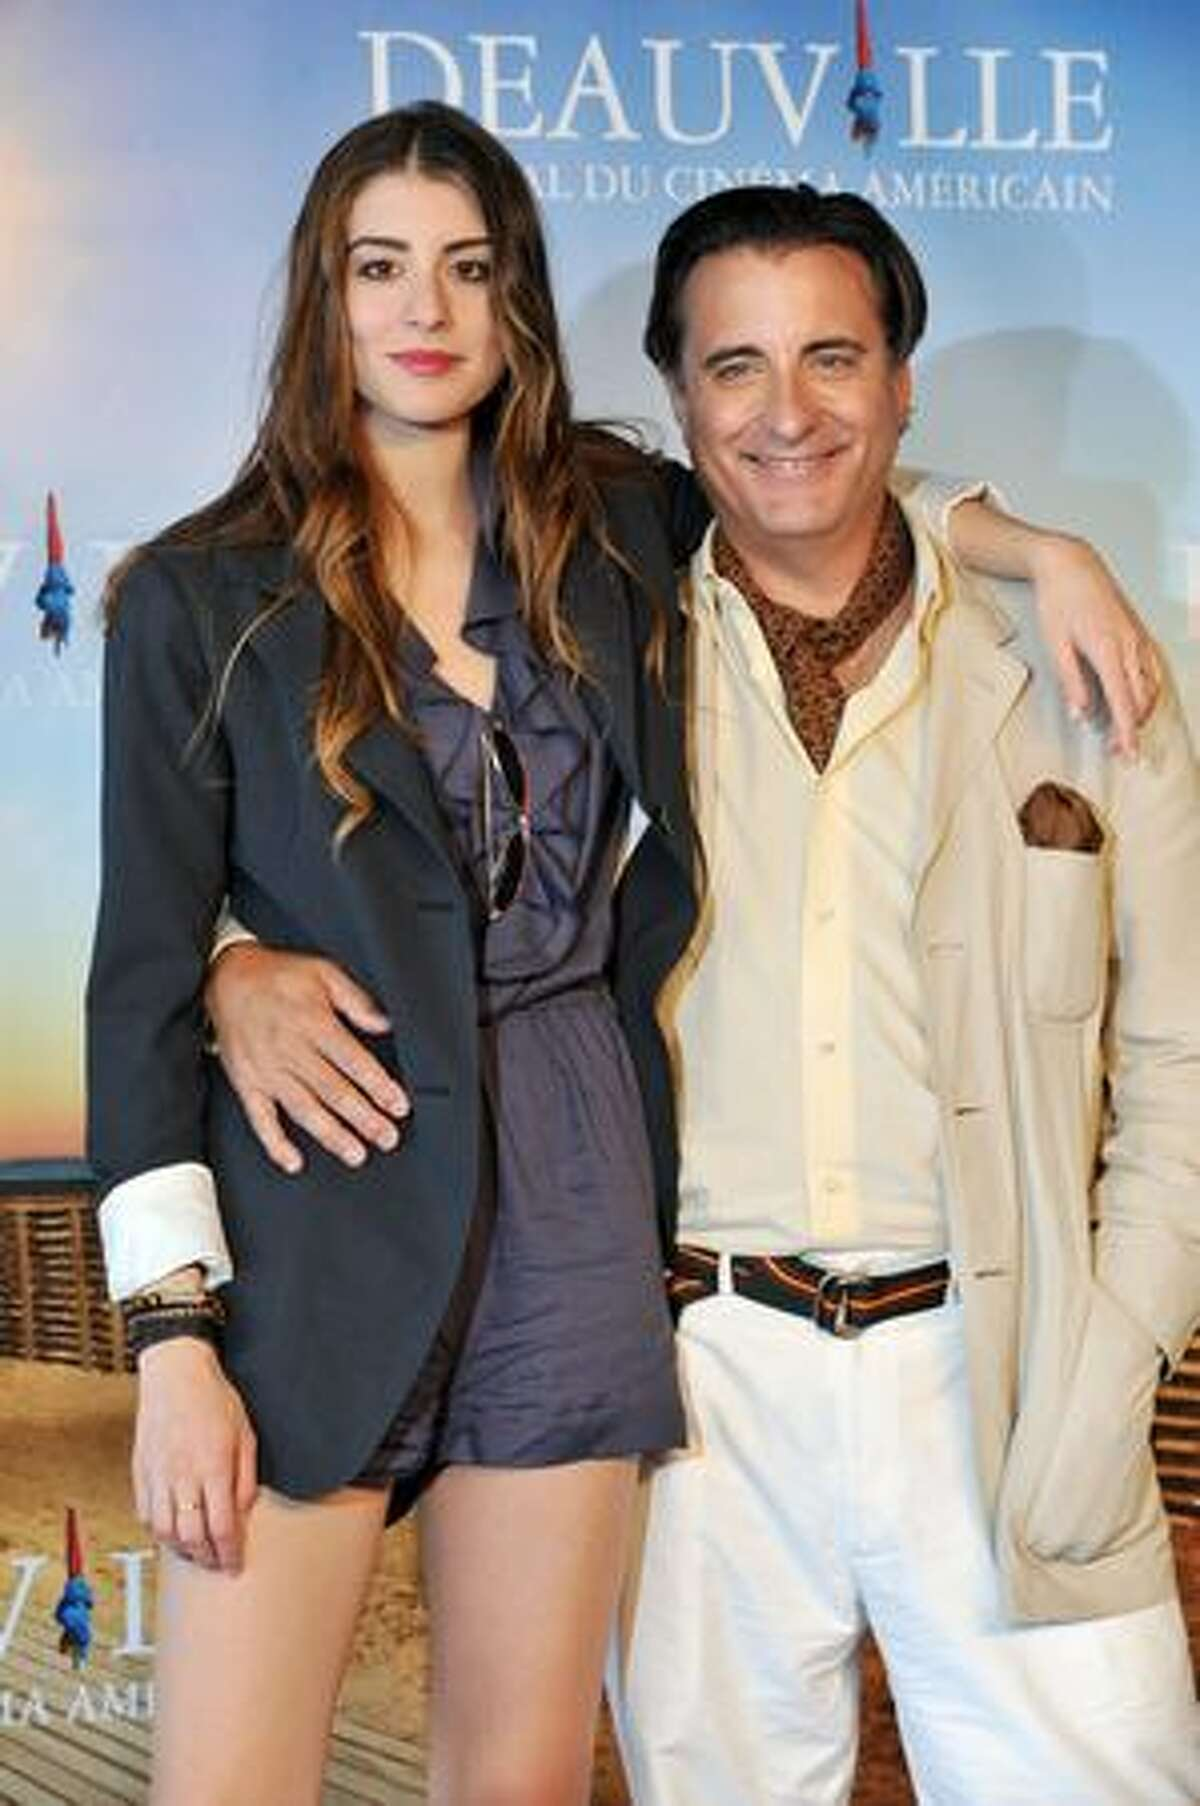 Actress Dominik Garcia-Lorido poses with her father Andy Garcia at a photocall for the film